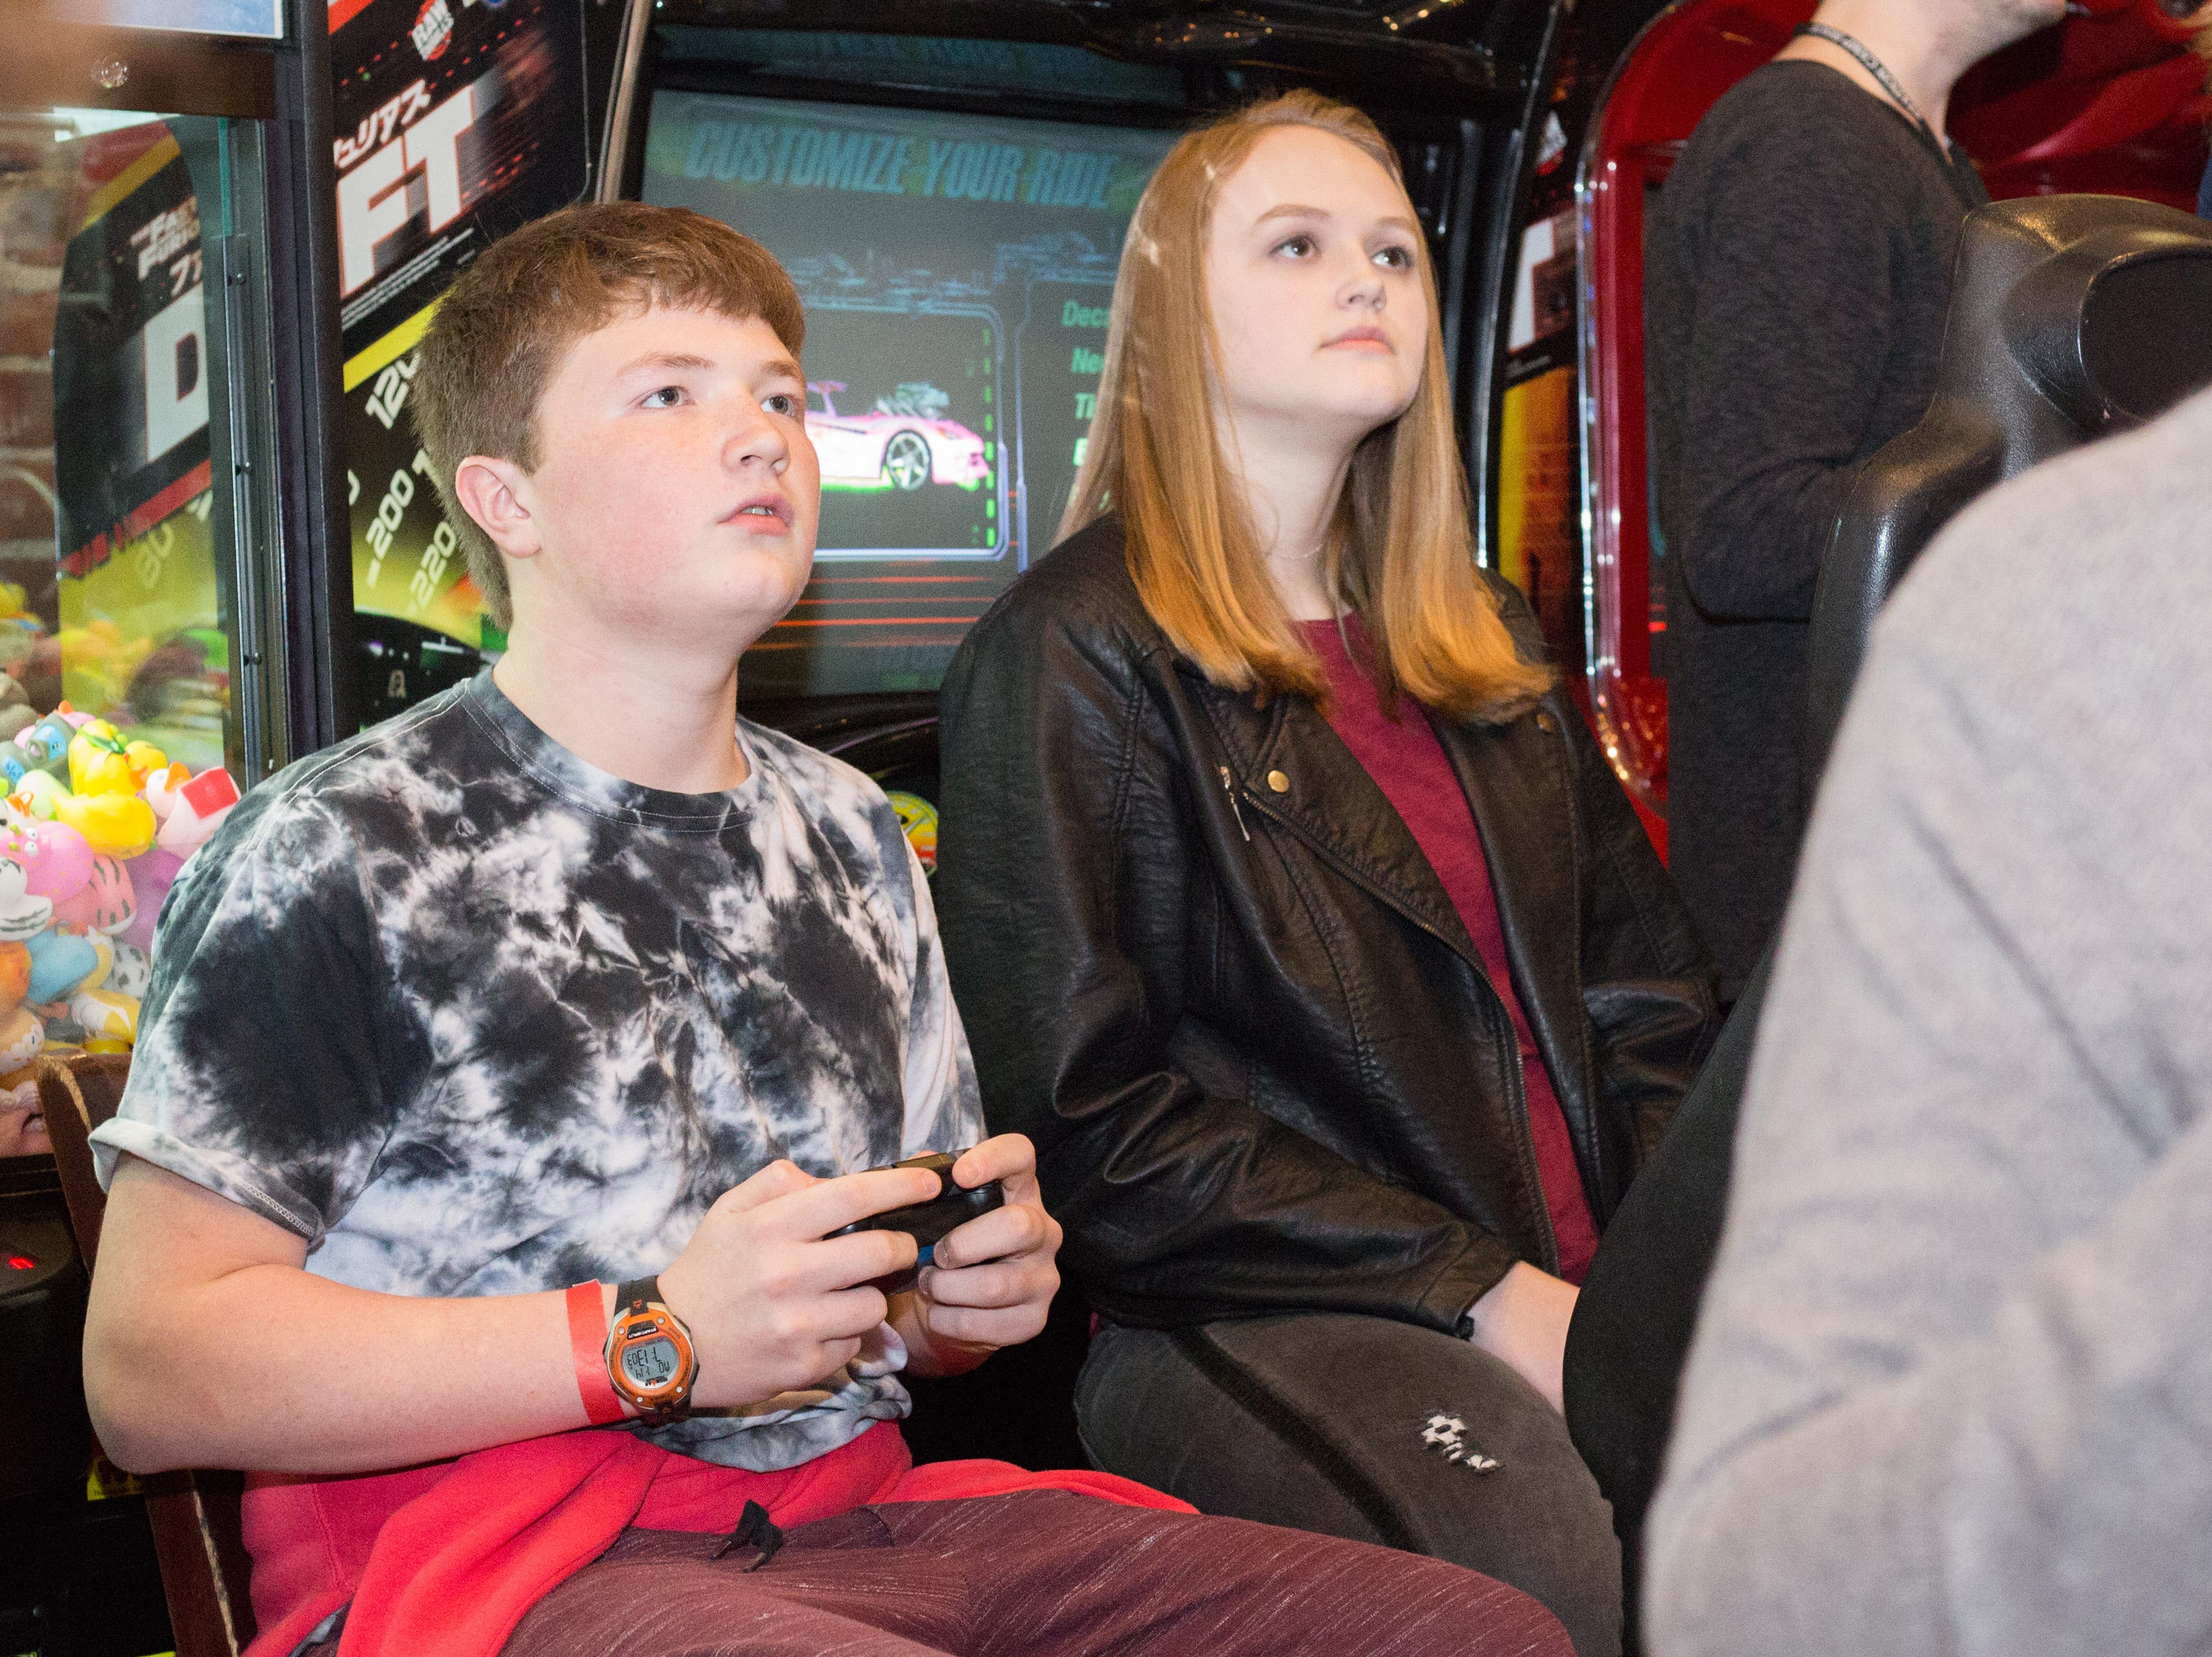 The Super Smash Brothers Ultimate Tournament presented by Big Dad Games drew a large crowd to Filly's Game and Grill in Gallatin on Monday, Jan 14.